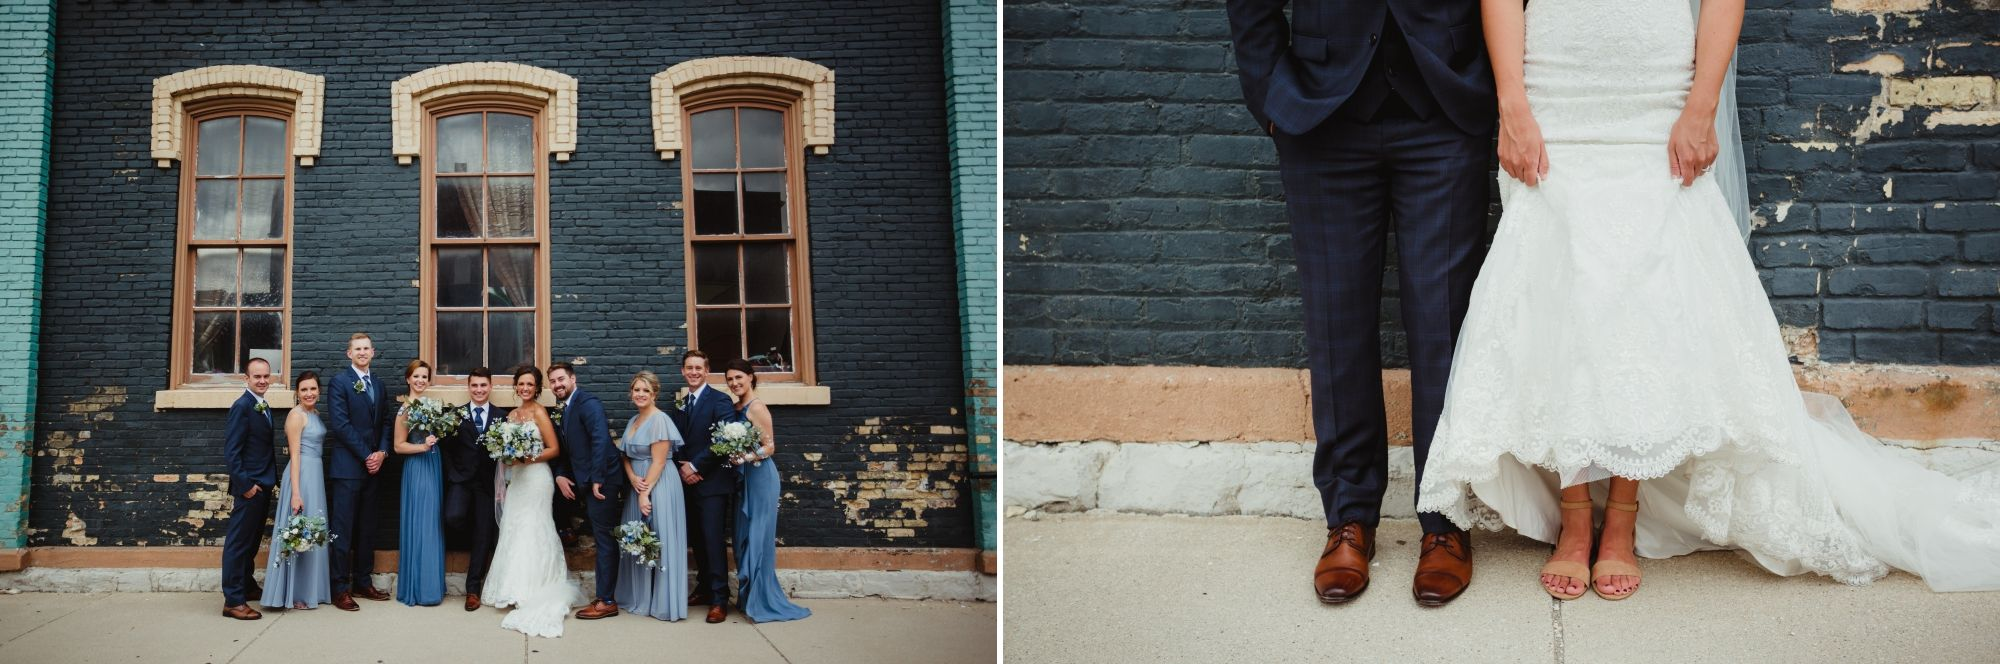 Wedding party standing in front of a navy brick wall then a close up of the bride and groom's feet.